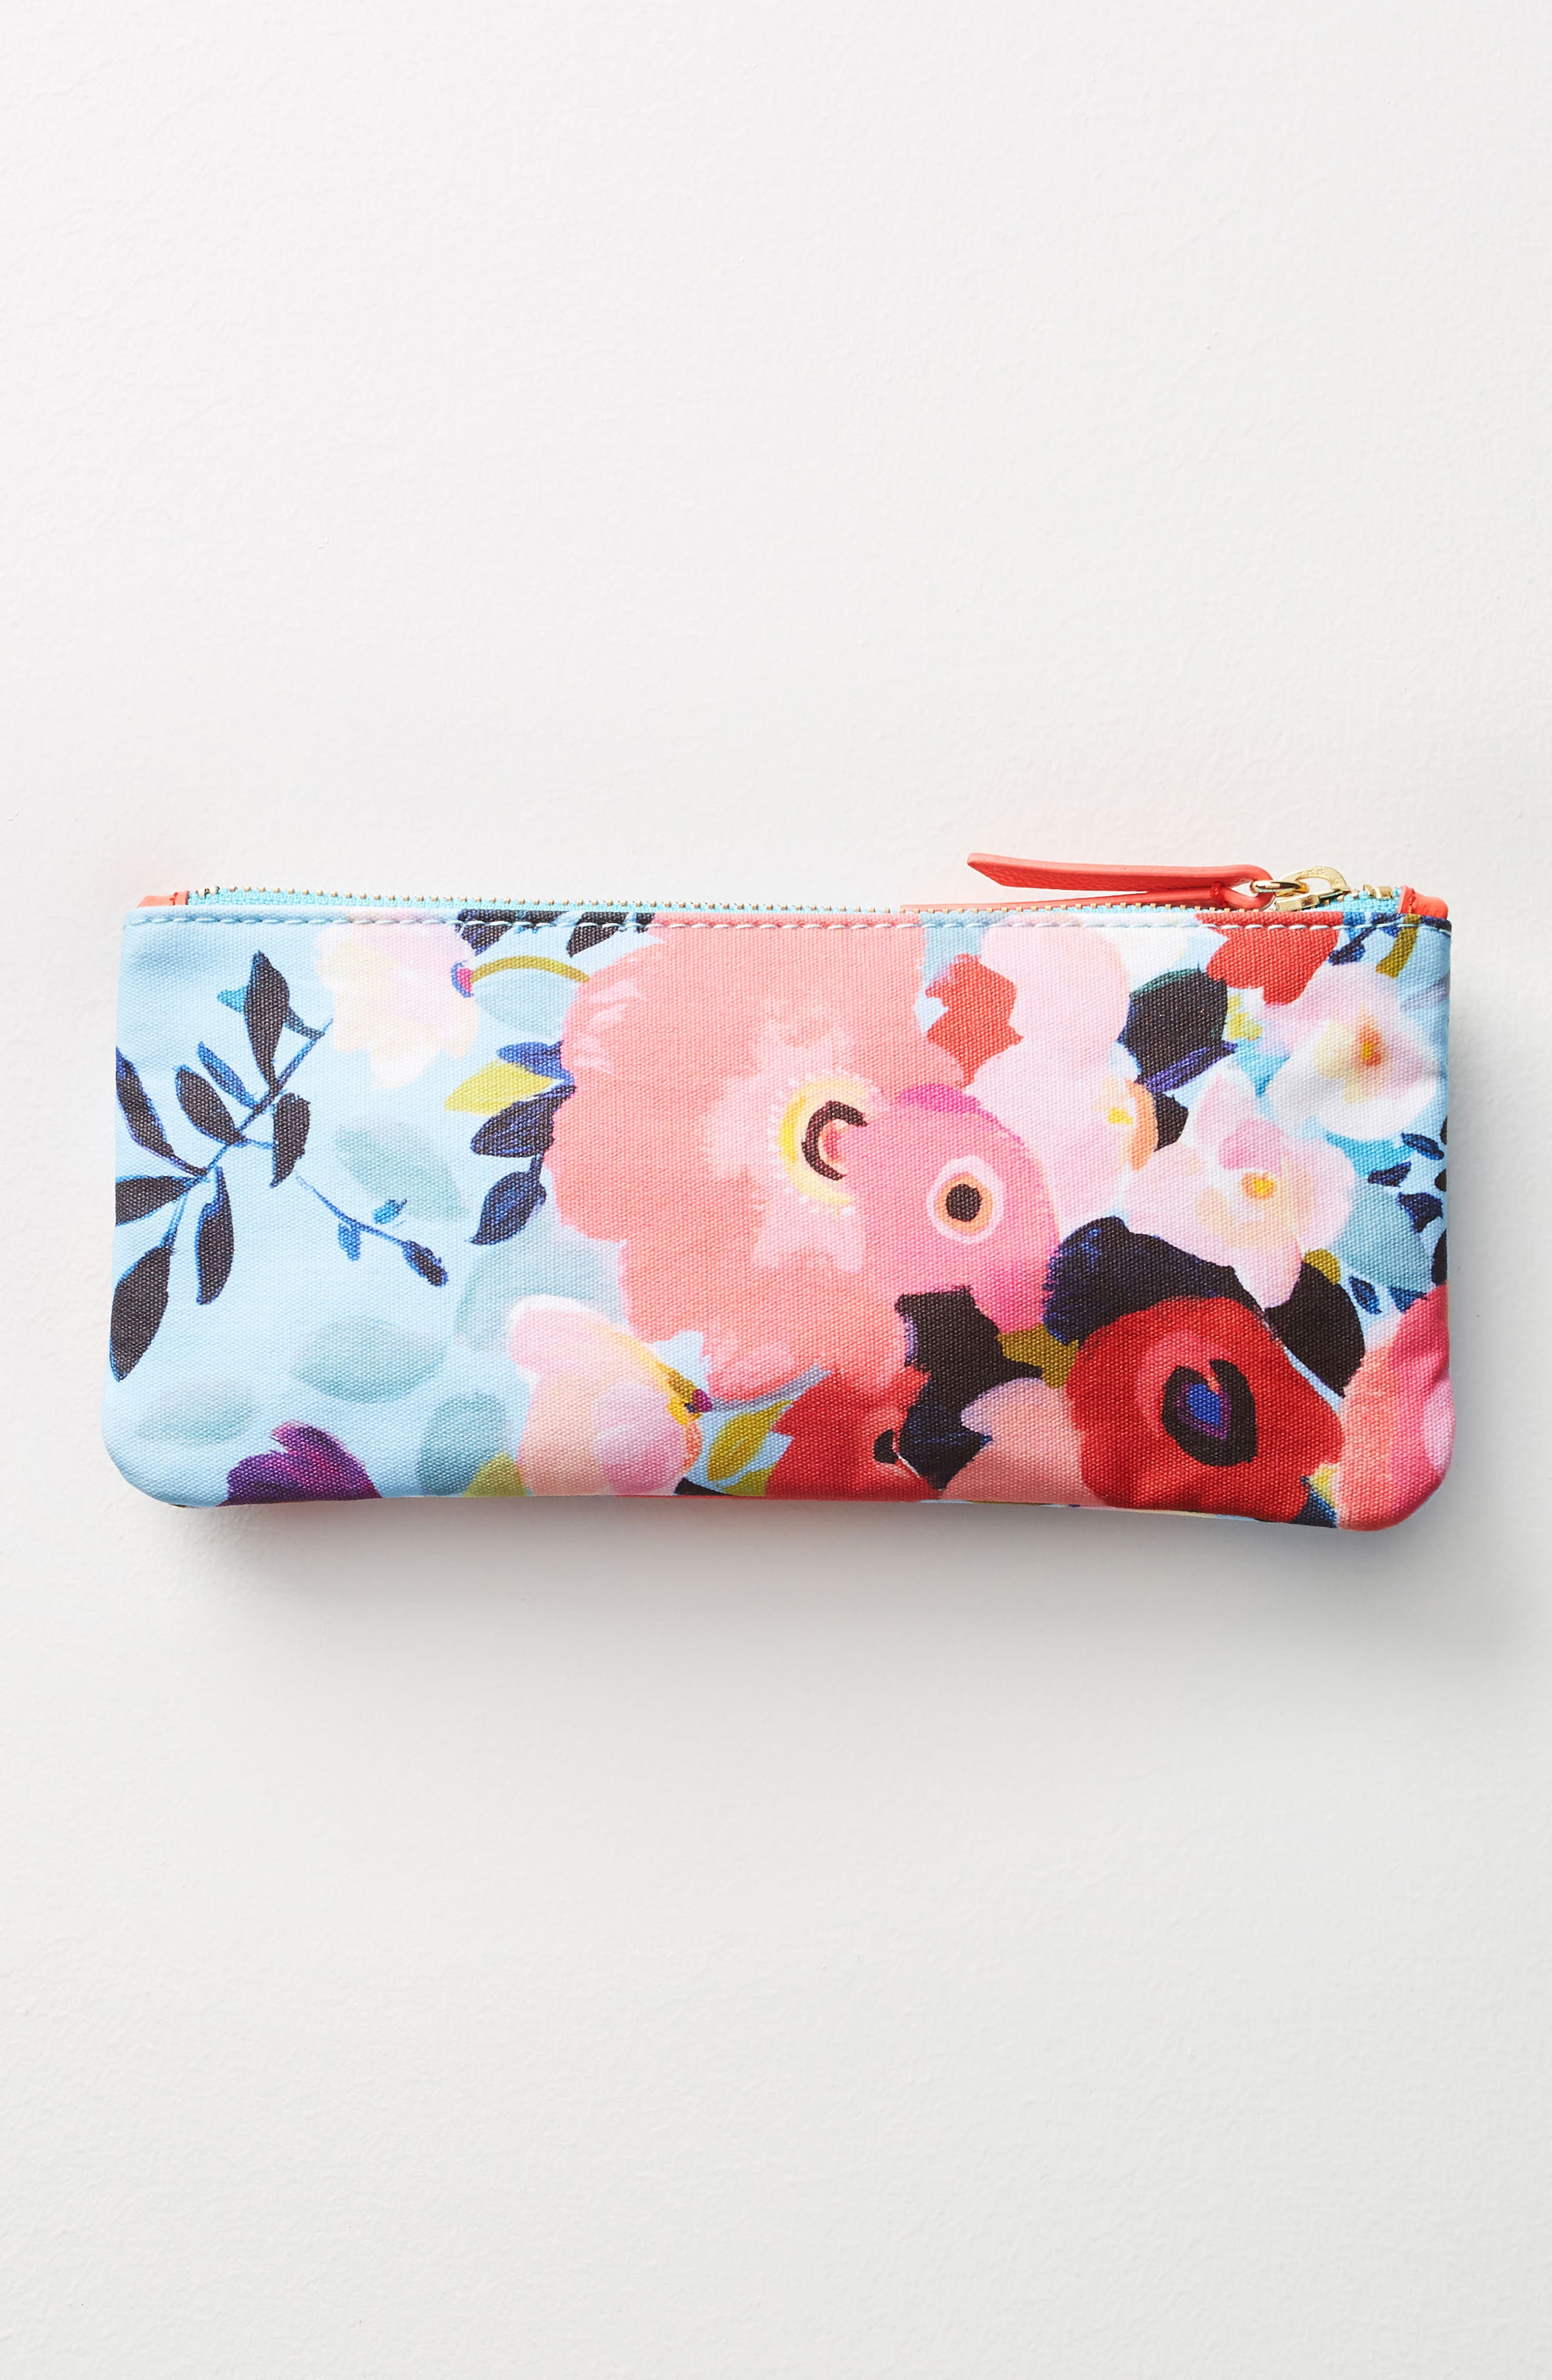 Picturesque Florals Pencil Pouch,                             Alternate thumbnail 2, color,                             400